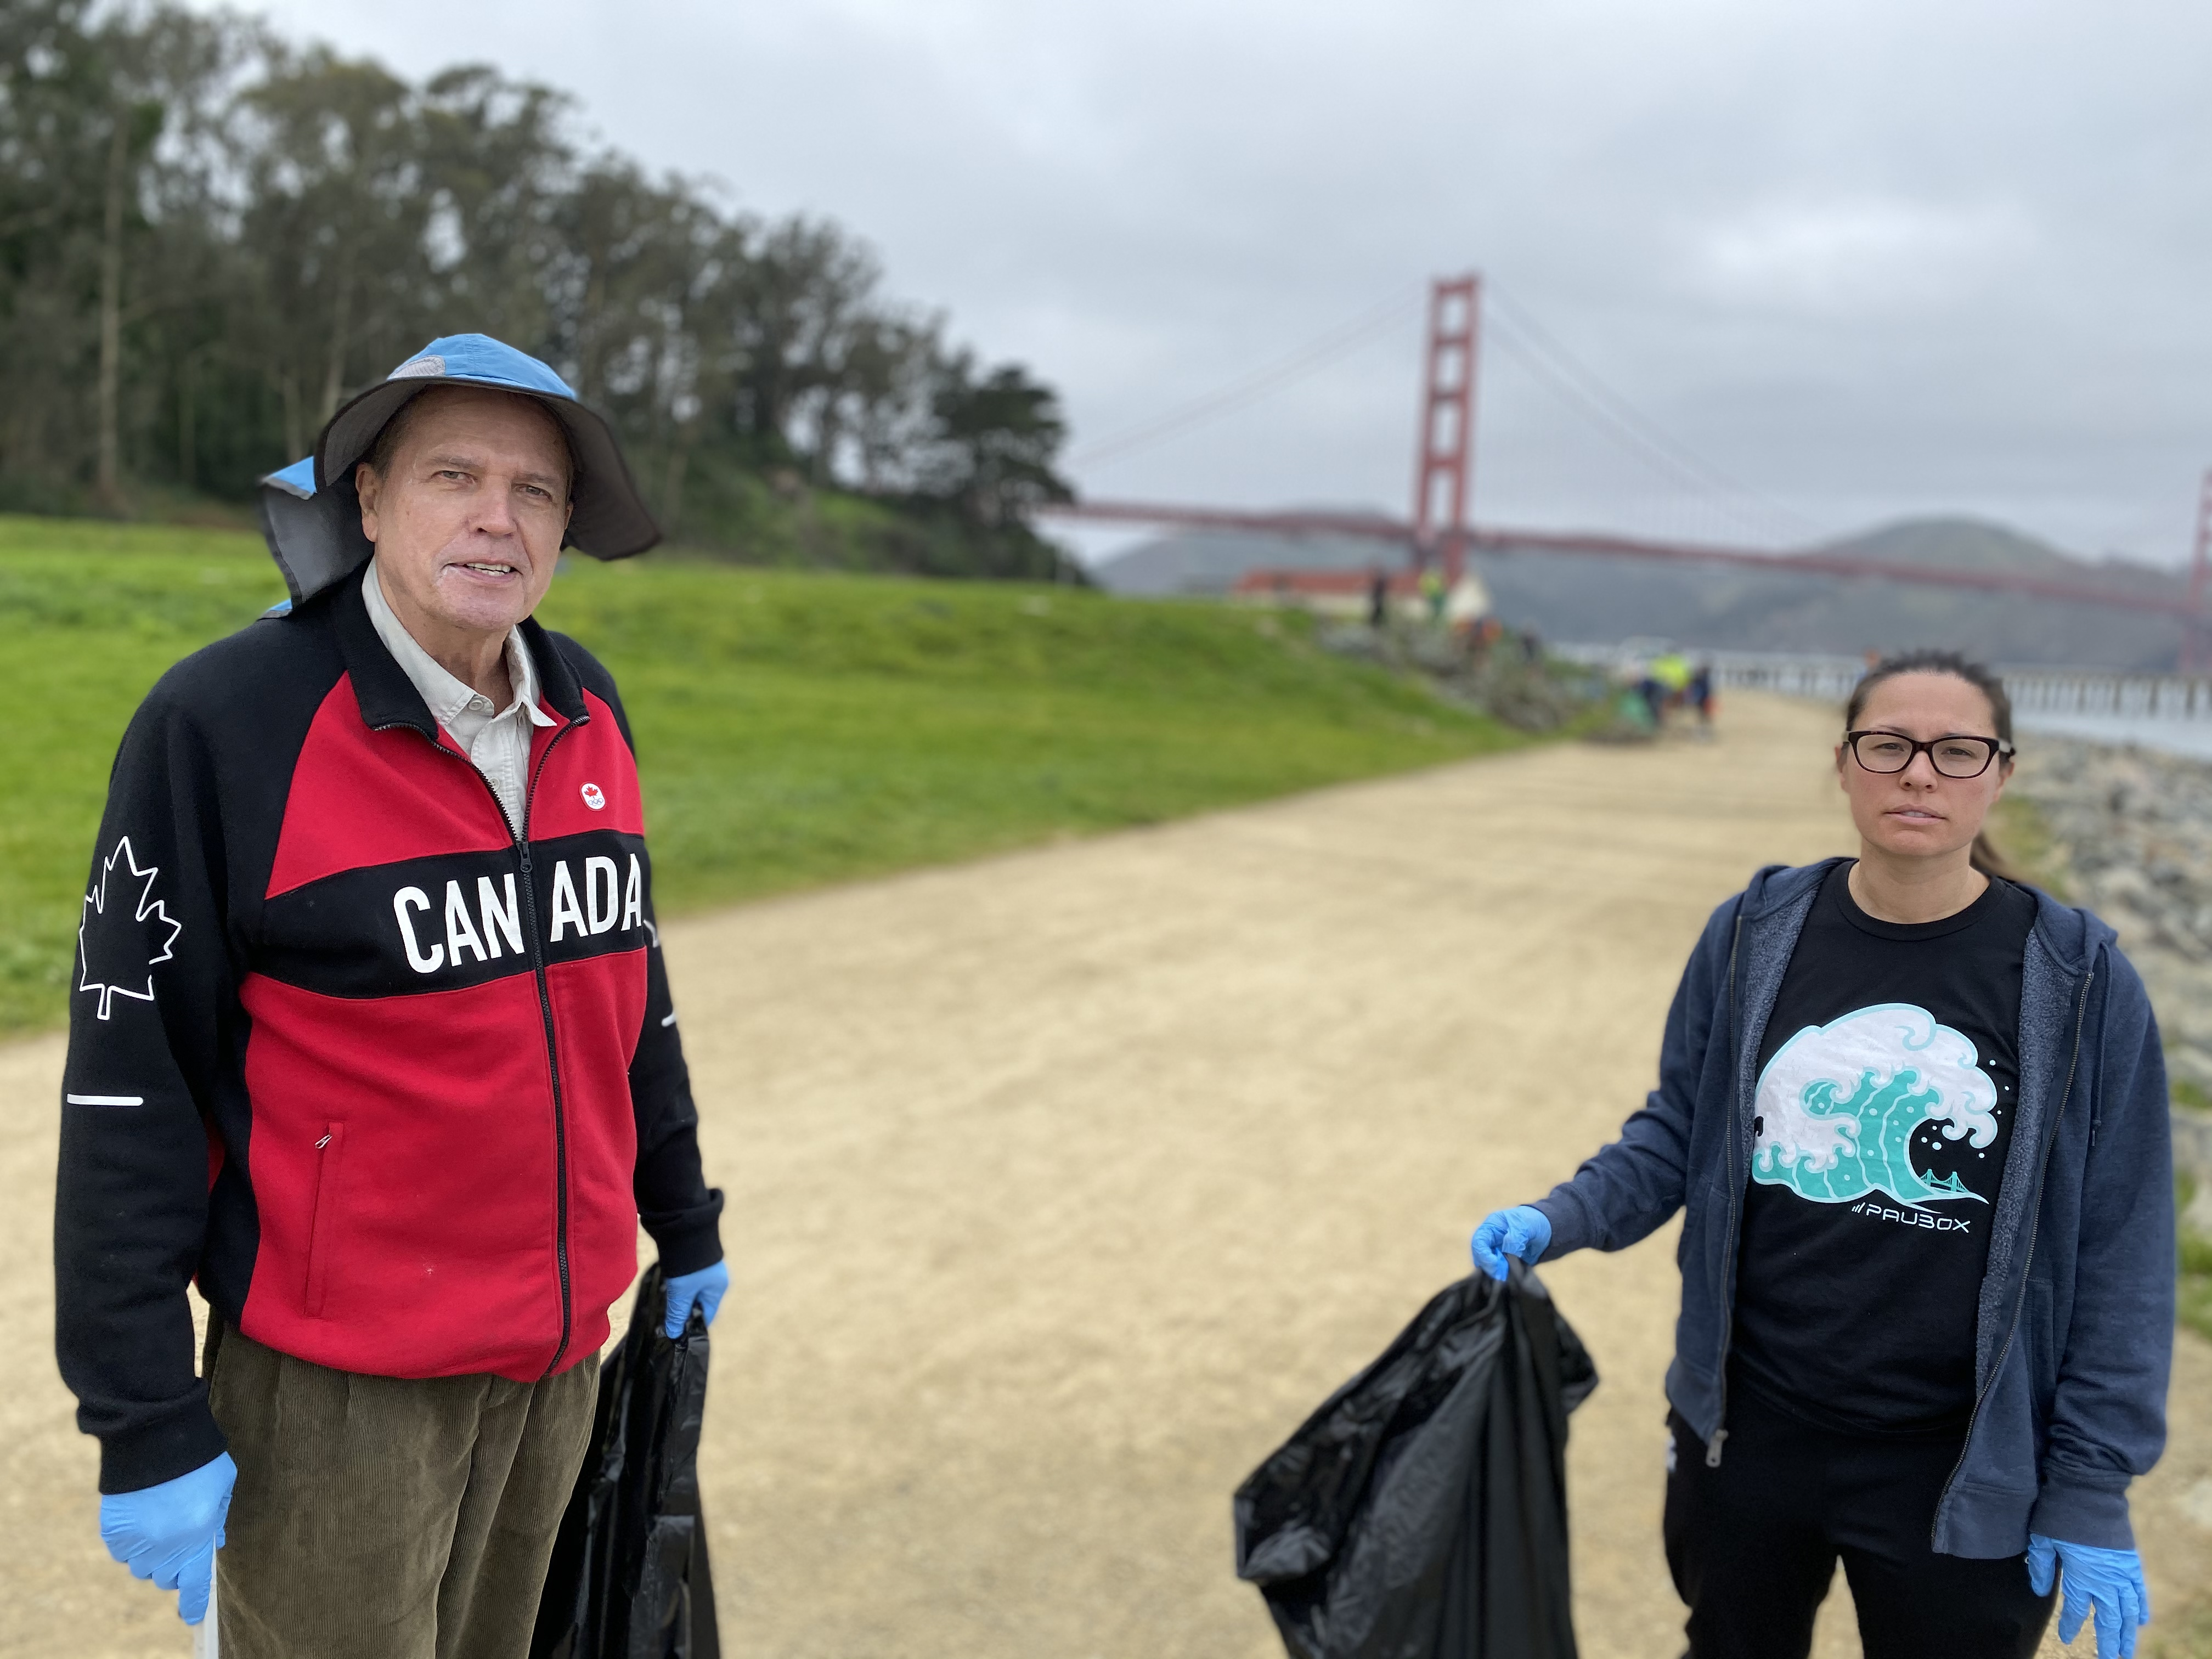 Denis Coleman and Lisa Lerud: Paubox Community Service: Trash Pick up at Crissy Field